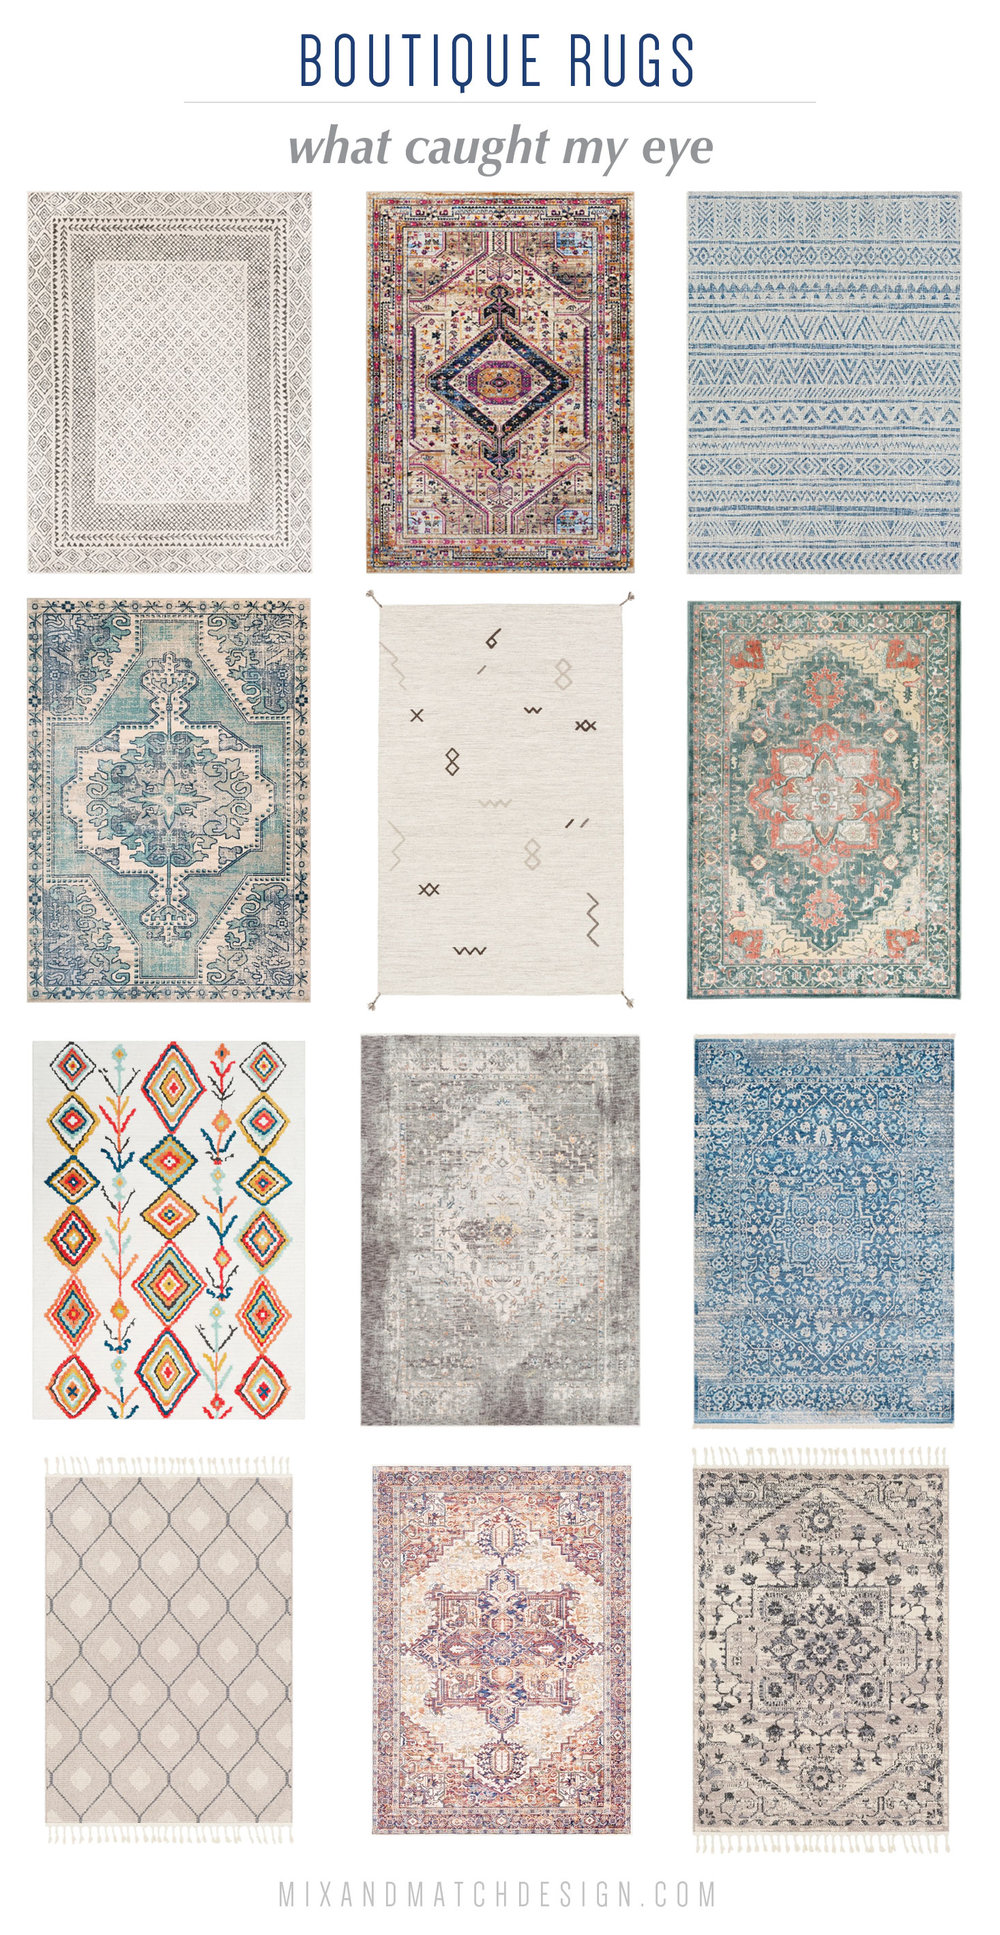 I love a good rug - it can be the finishing touch on a room! On the blog, I'm sharing a roundup of favorites from Boutique Rugs in different styles and colors. I've got Persian-style, Moroccan, Vintage, and more. Come on over! | Rug shopping guide